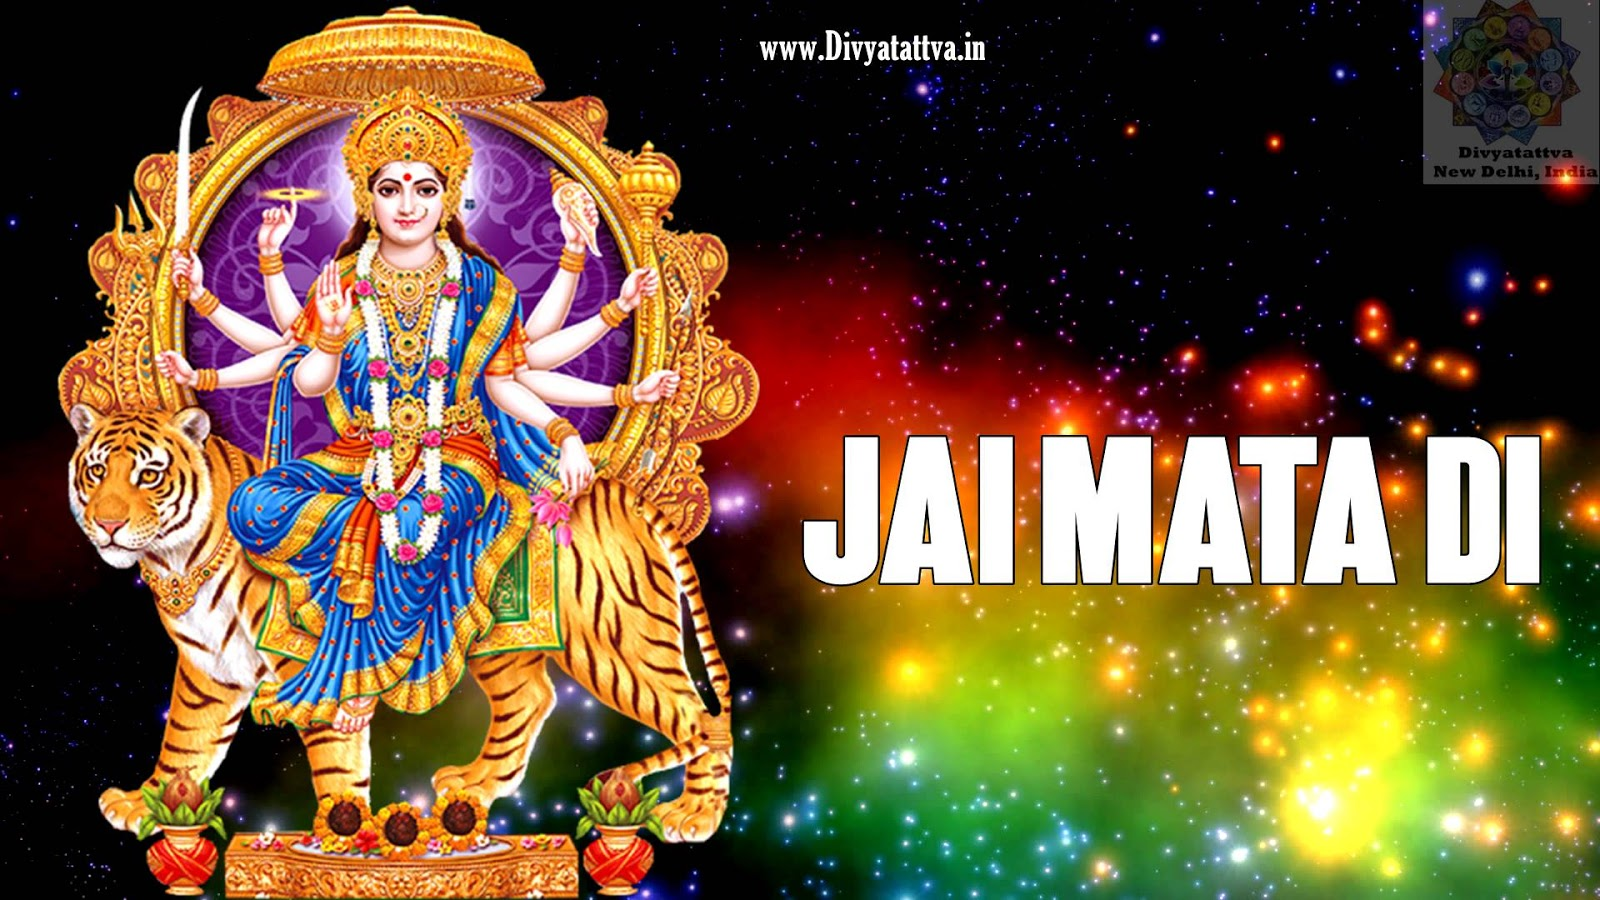 Fresh Jai Mata Di Wallpaper For Desktop Hd